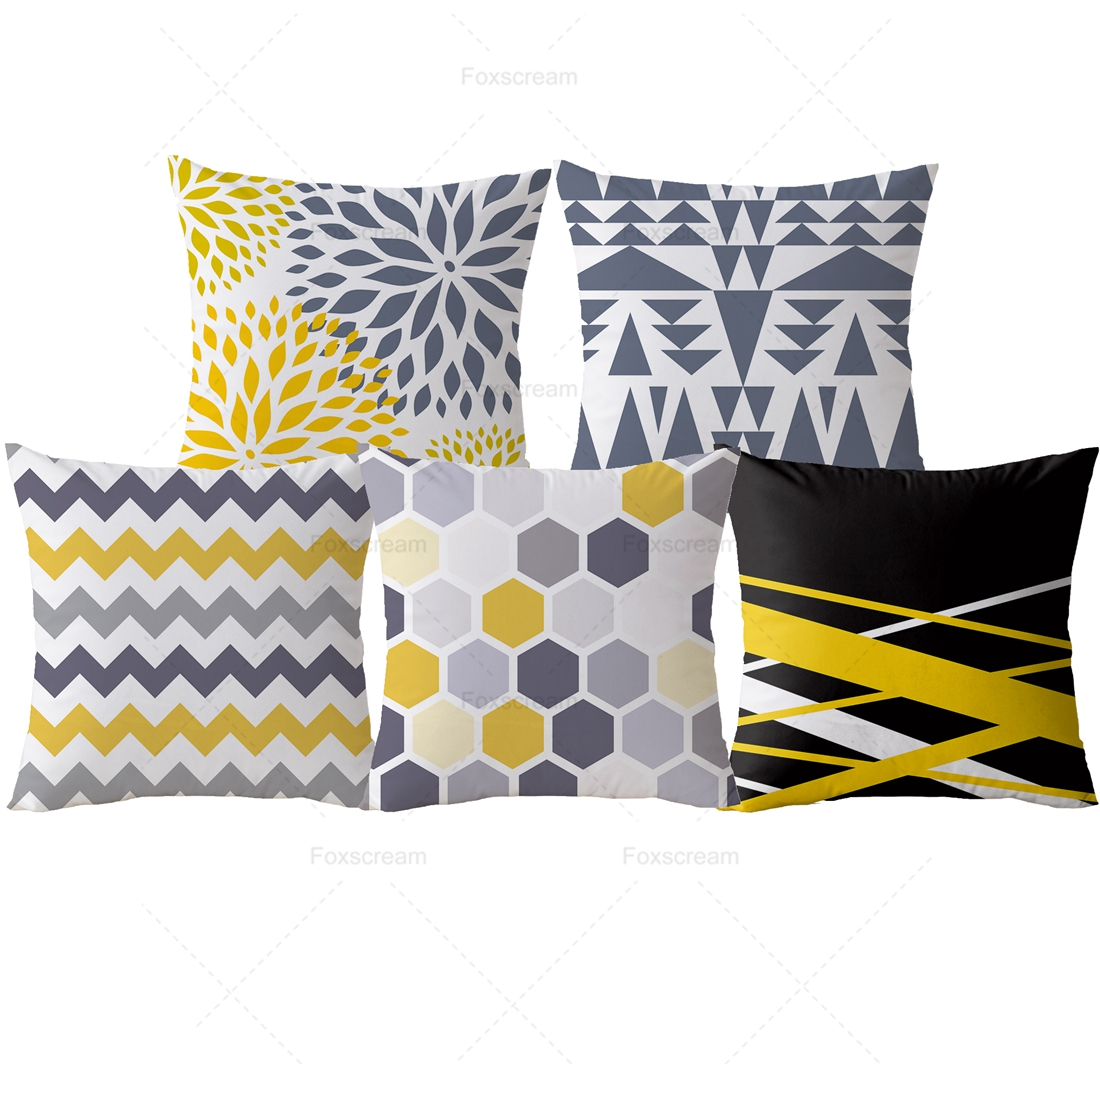 ideas colored sofa soft dark charcoal yellow navy blue and cute pillows sparkly gold for bedroom grey pillow mustard styles decor burgundy throw rust couch accent